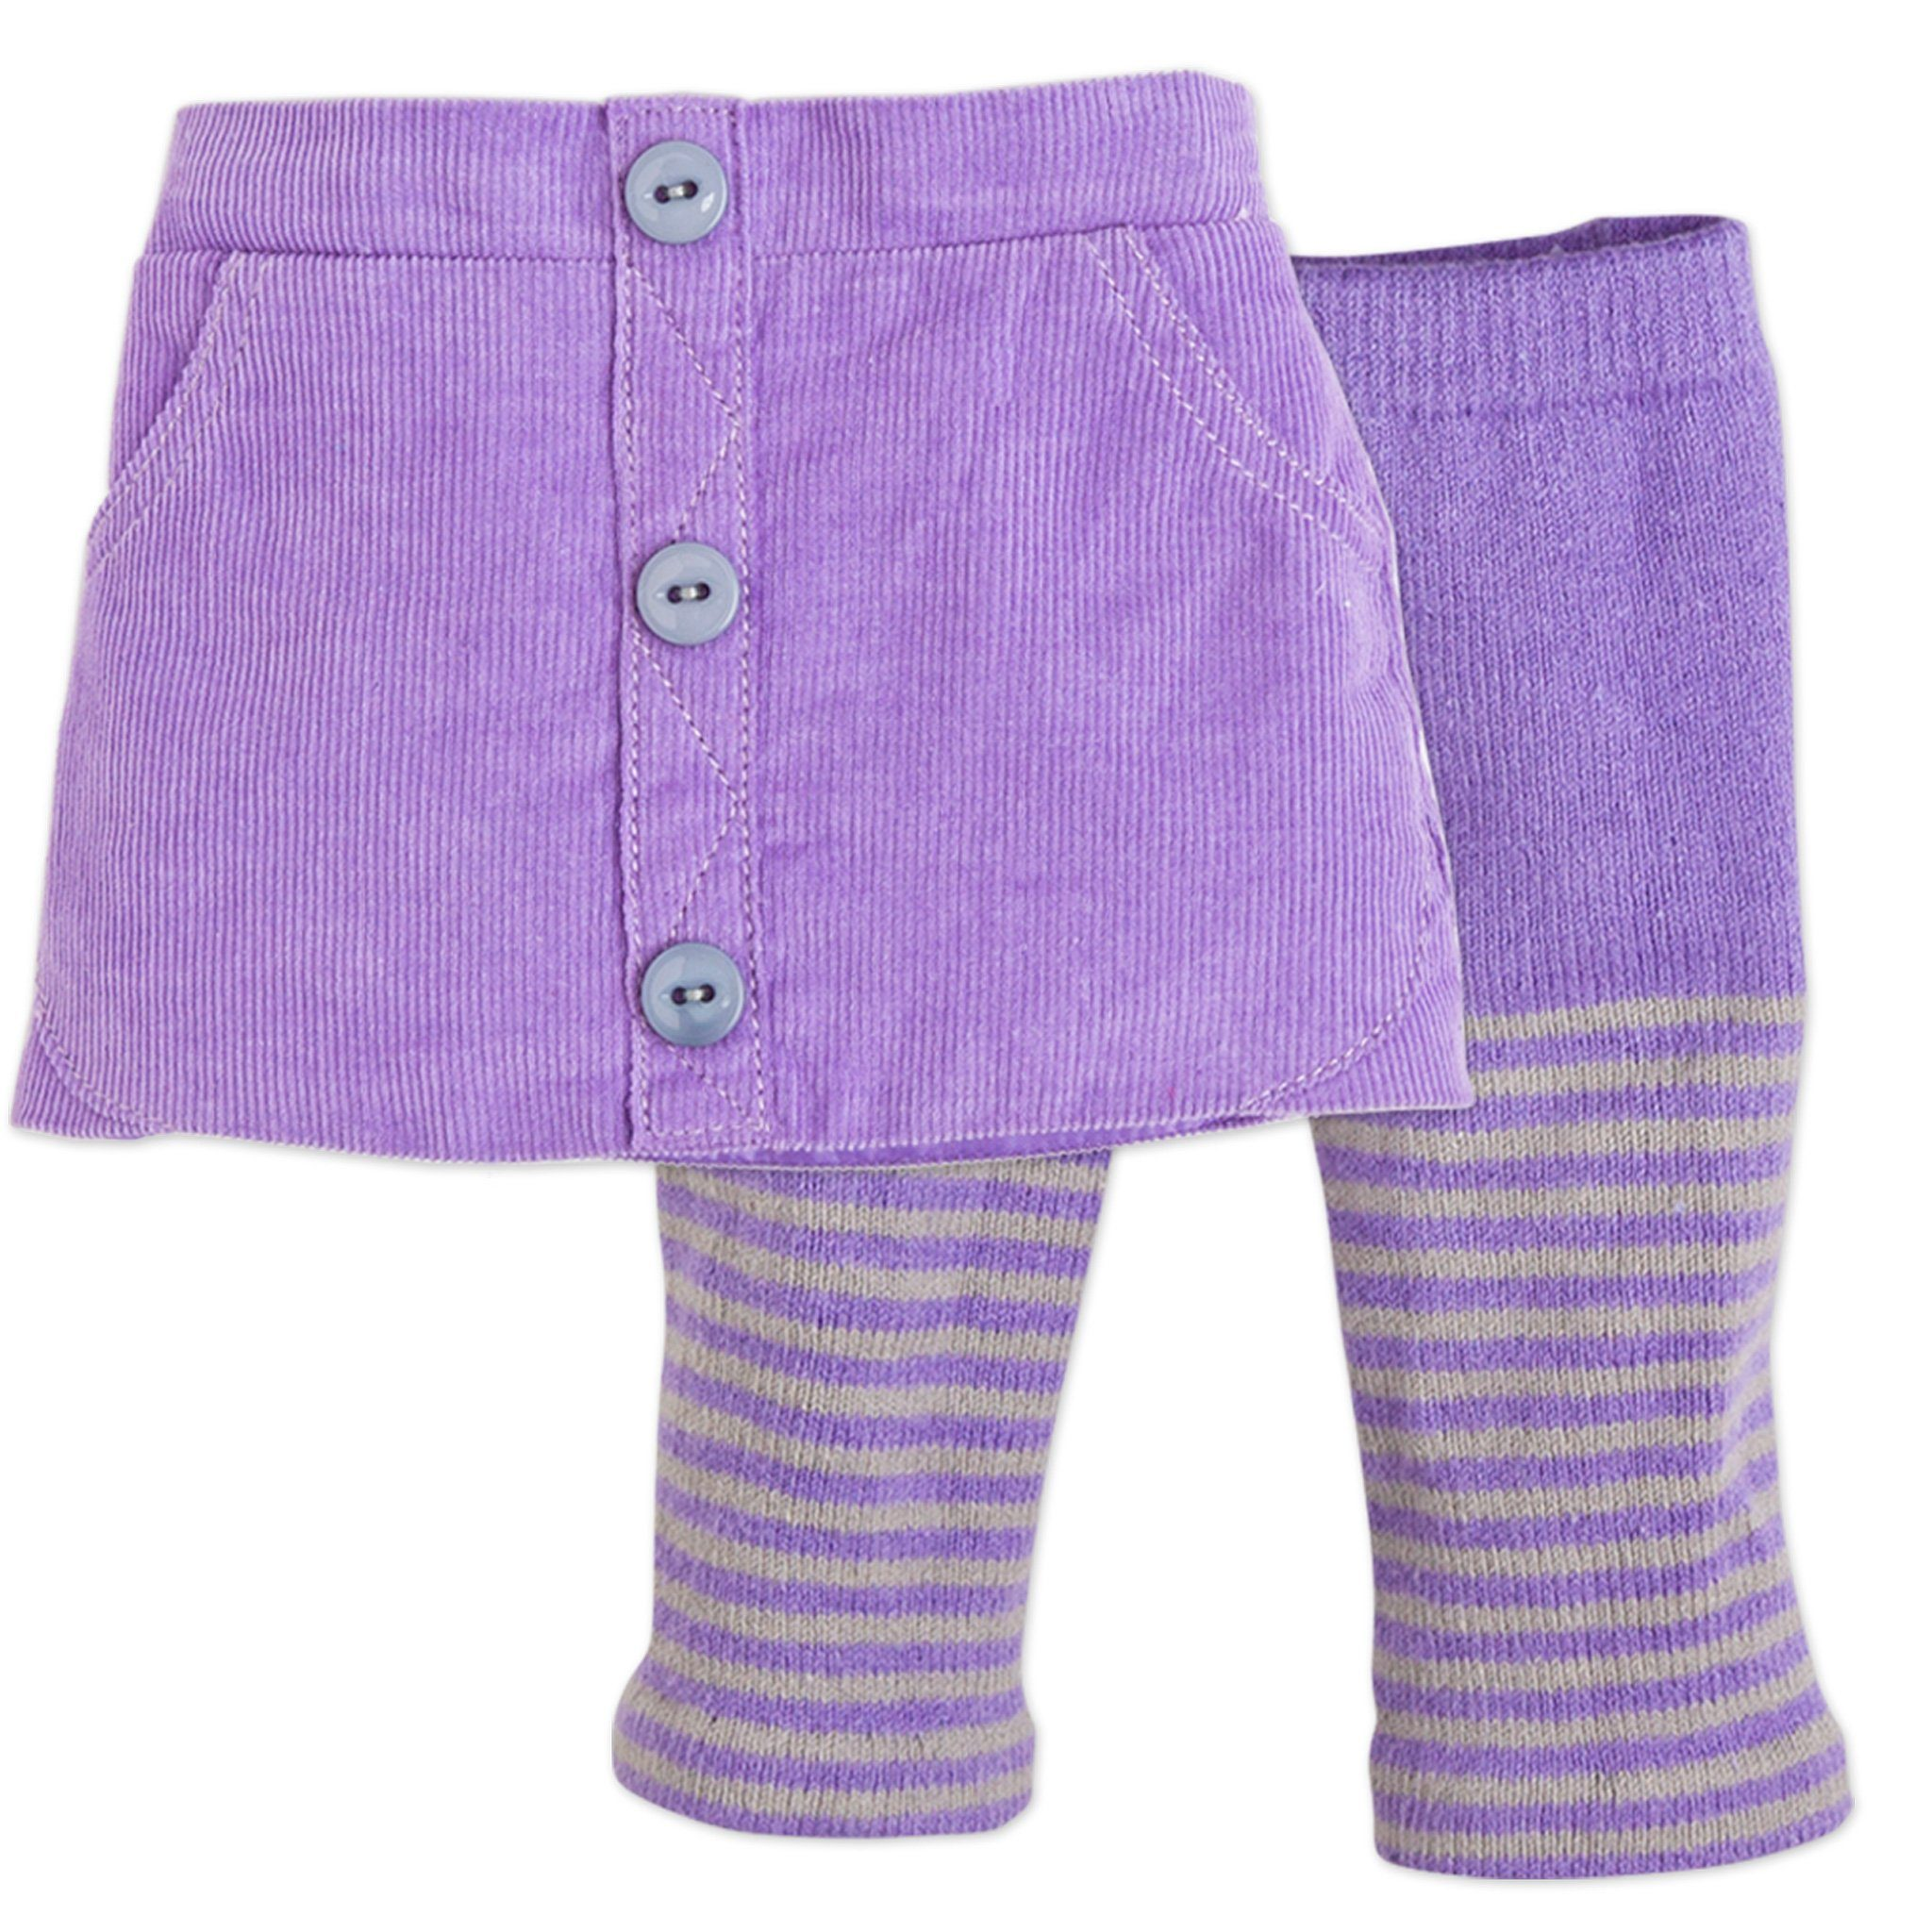 Maplelea Friend 18 inch doll starter outfit purple corduroy skirt, purple striped tights fits all 18 inch dolls.